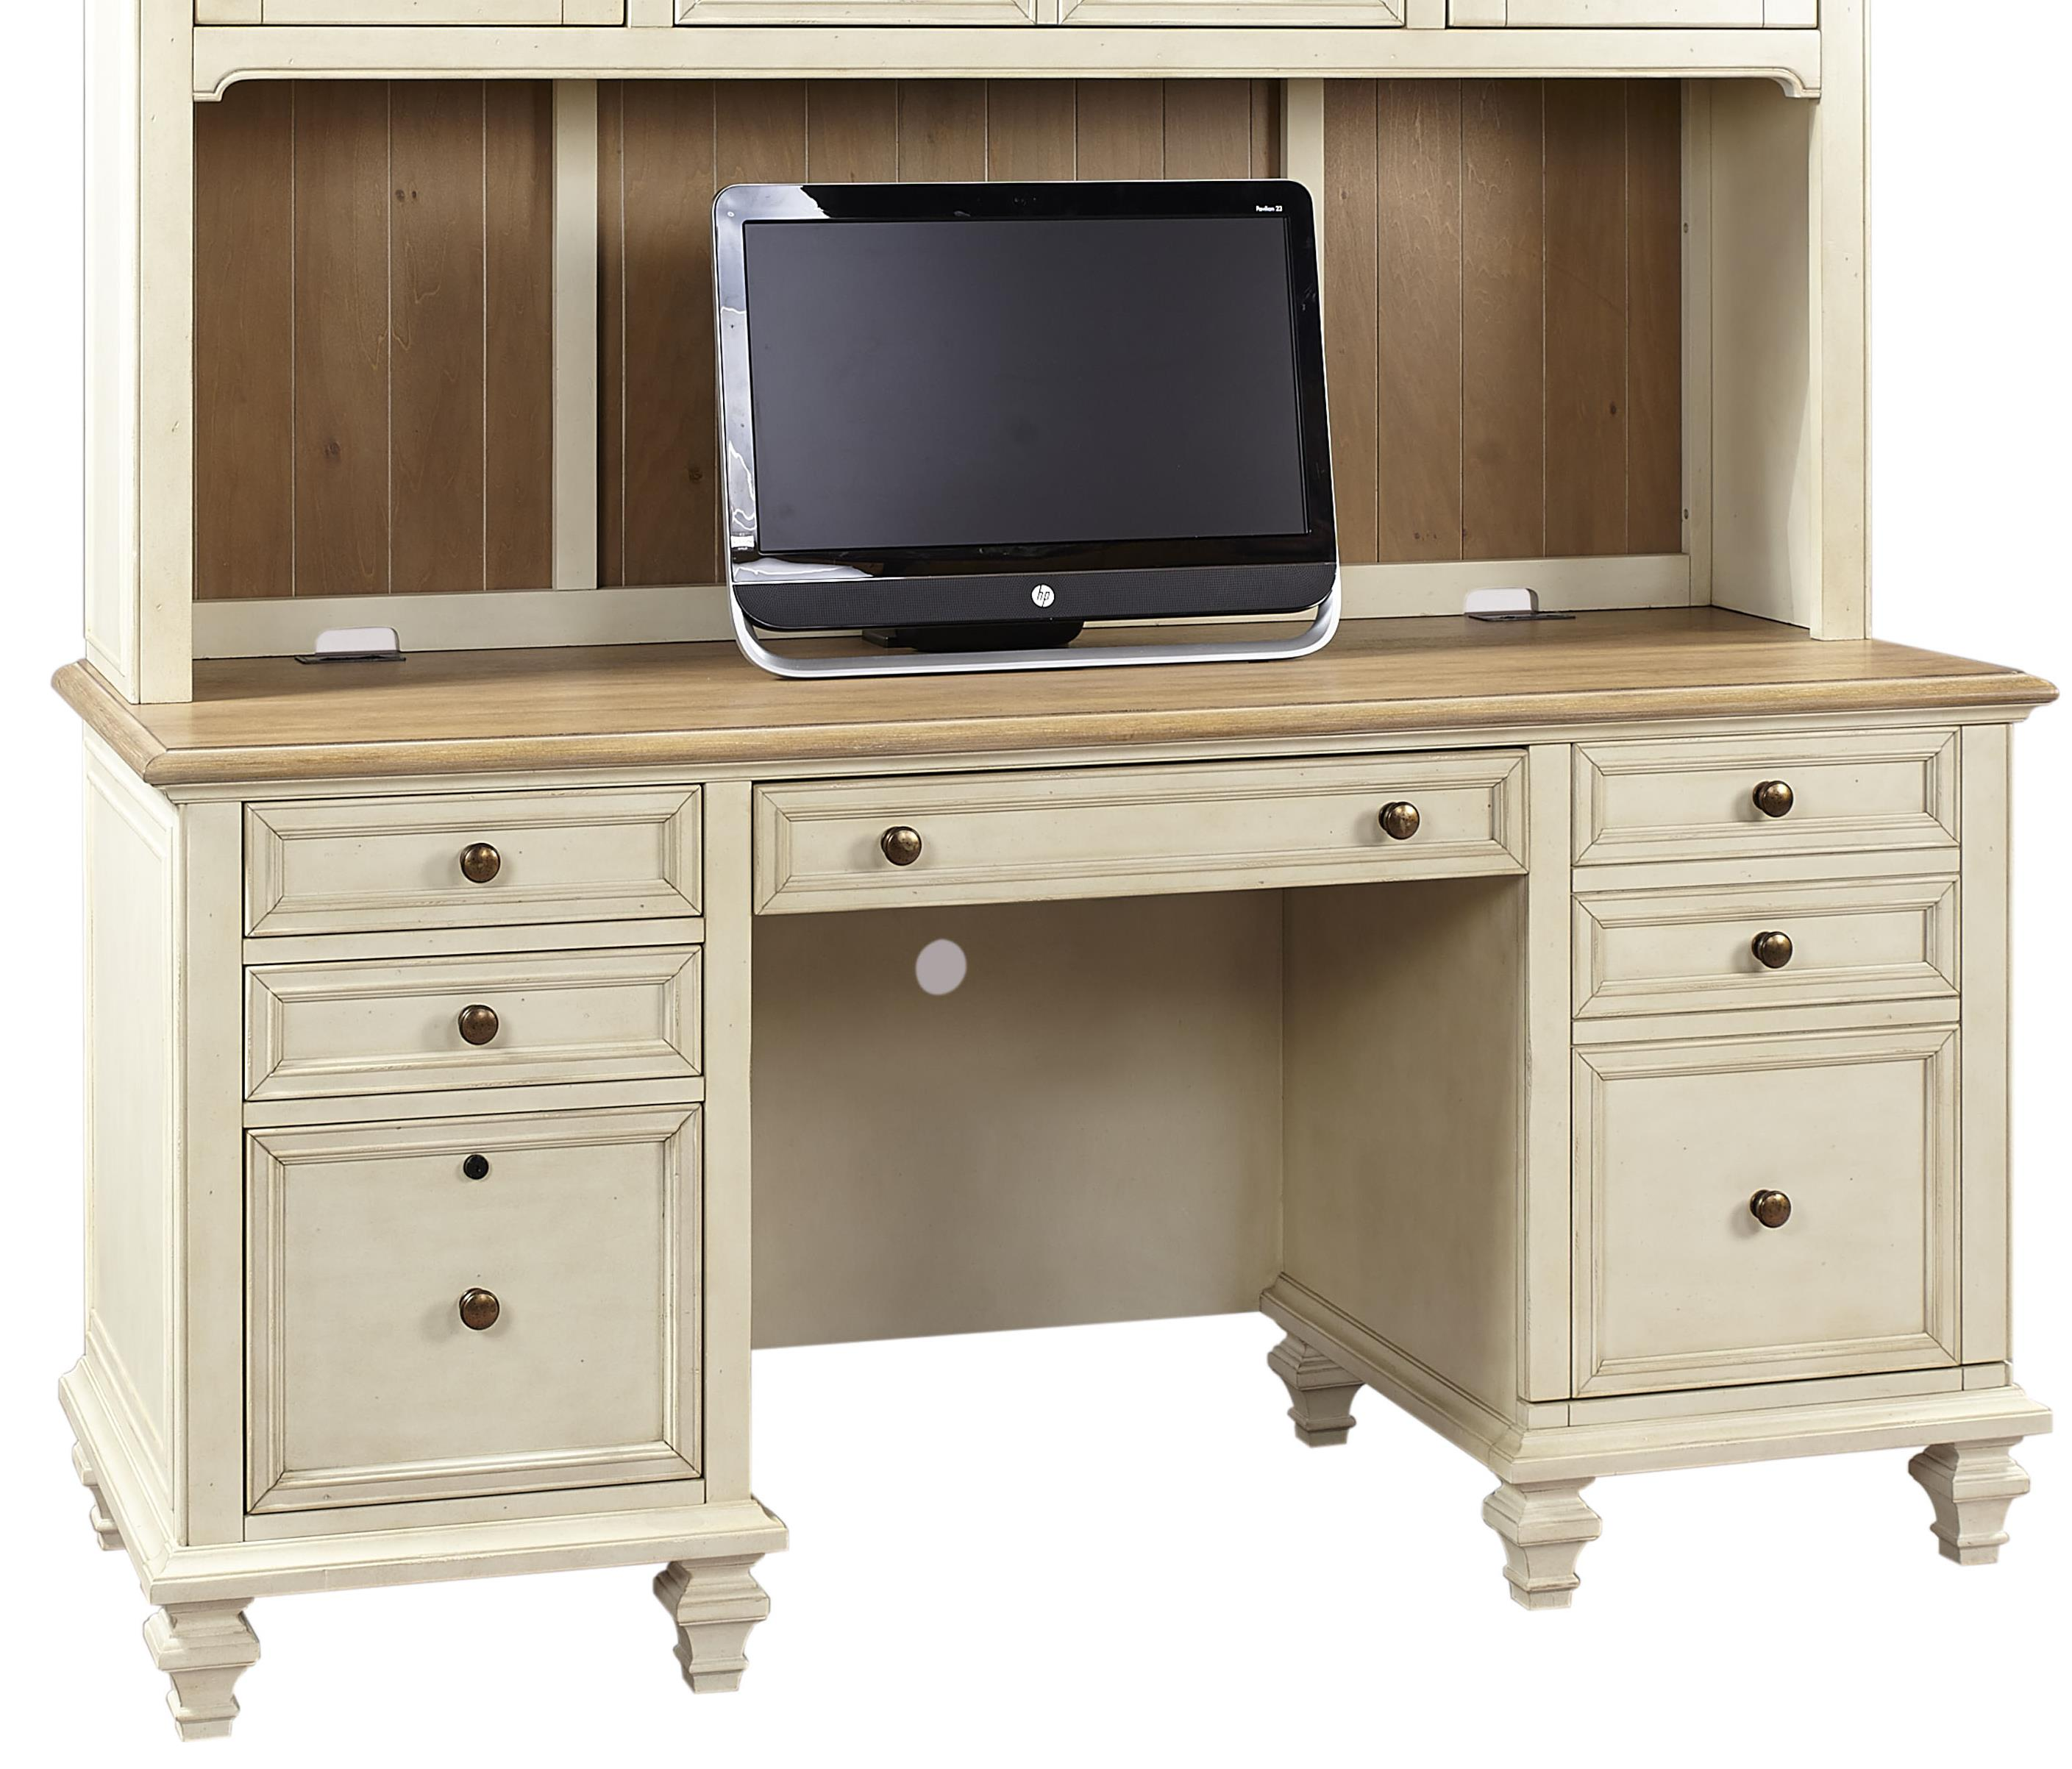 Aspenhome Cottonwood Credenza  - Item Number: I67-316